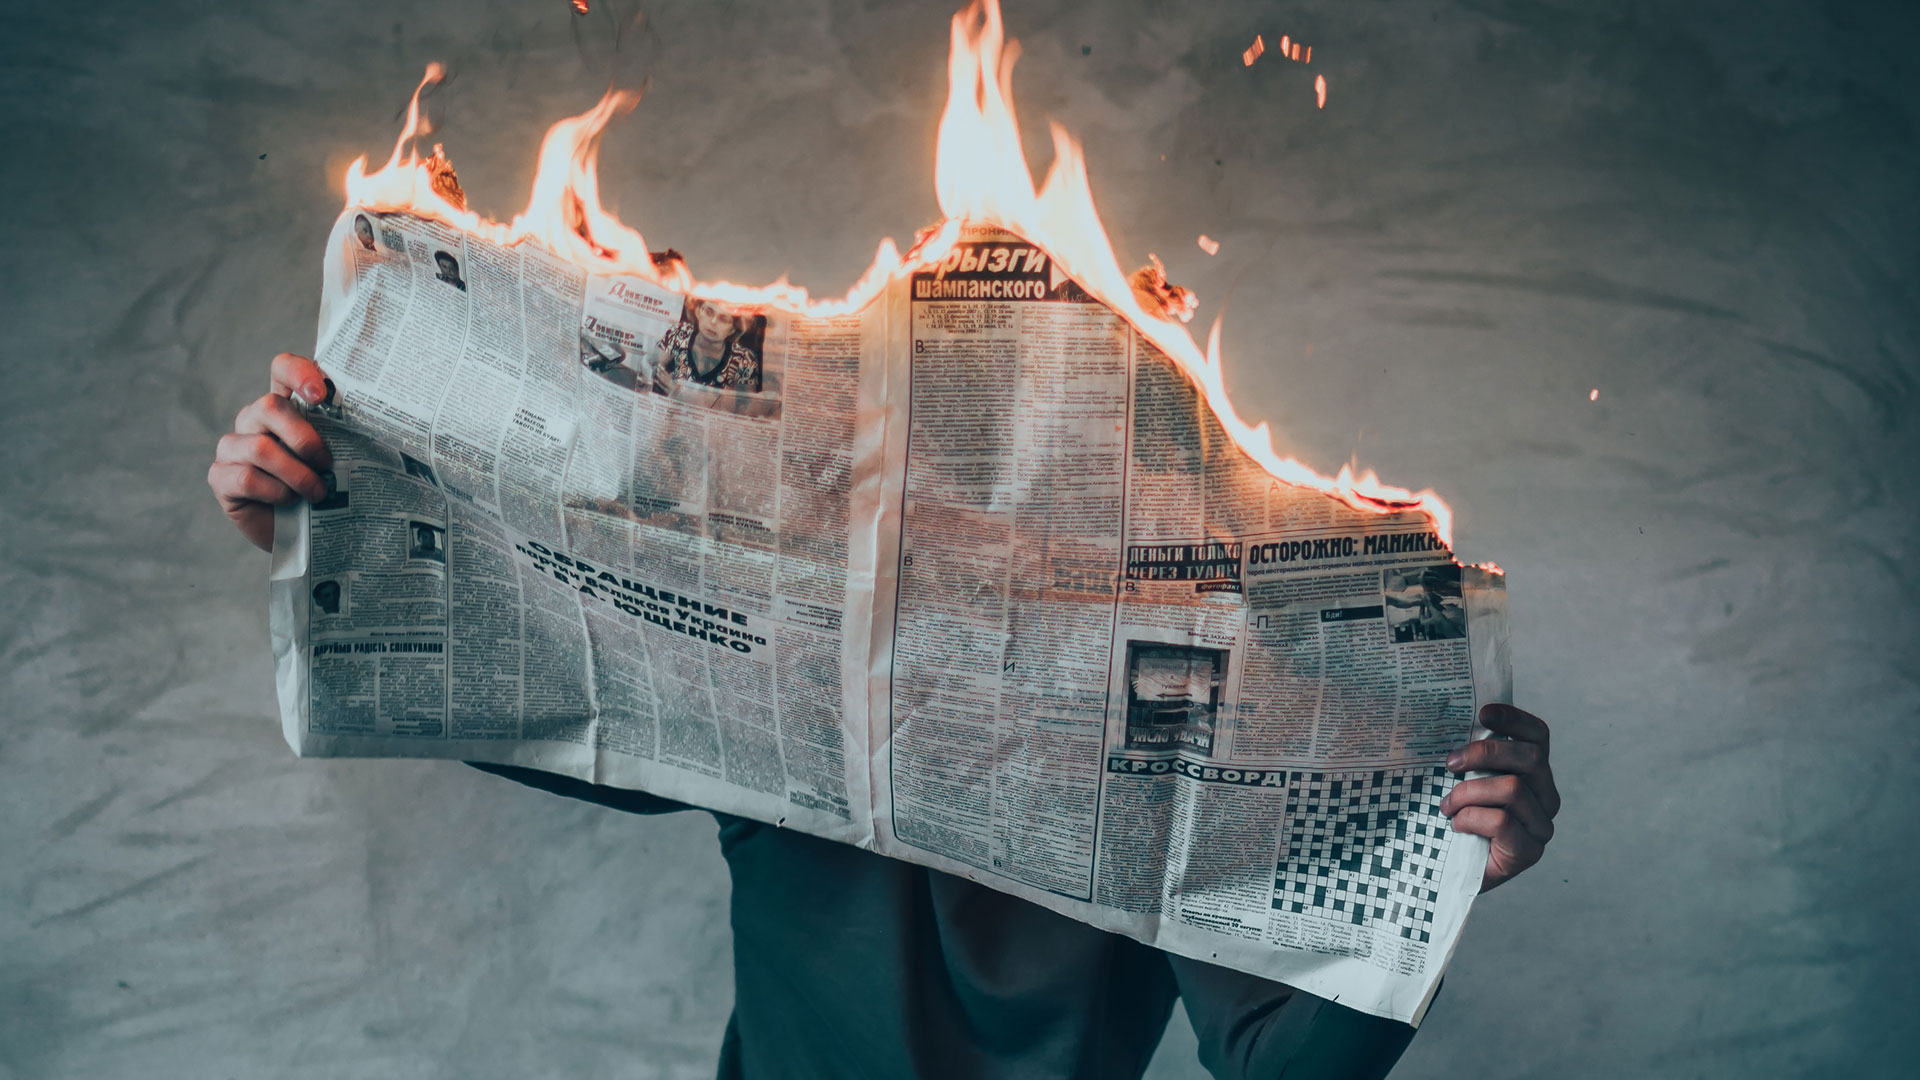 Article image shows a man who is holding a burning newspaper.